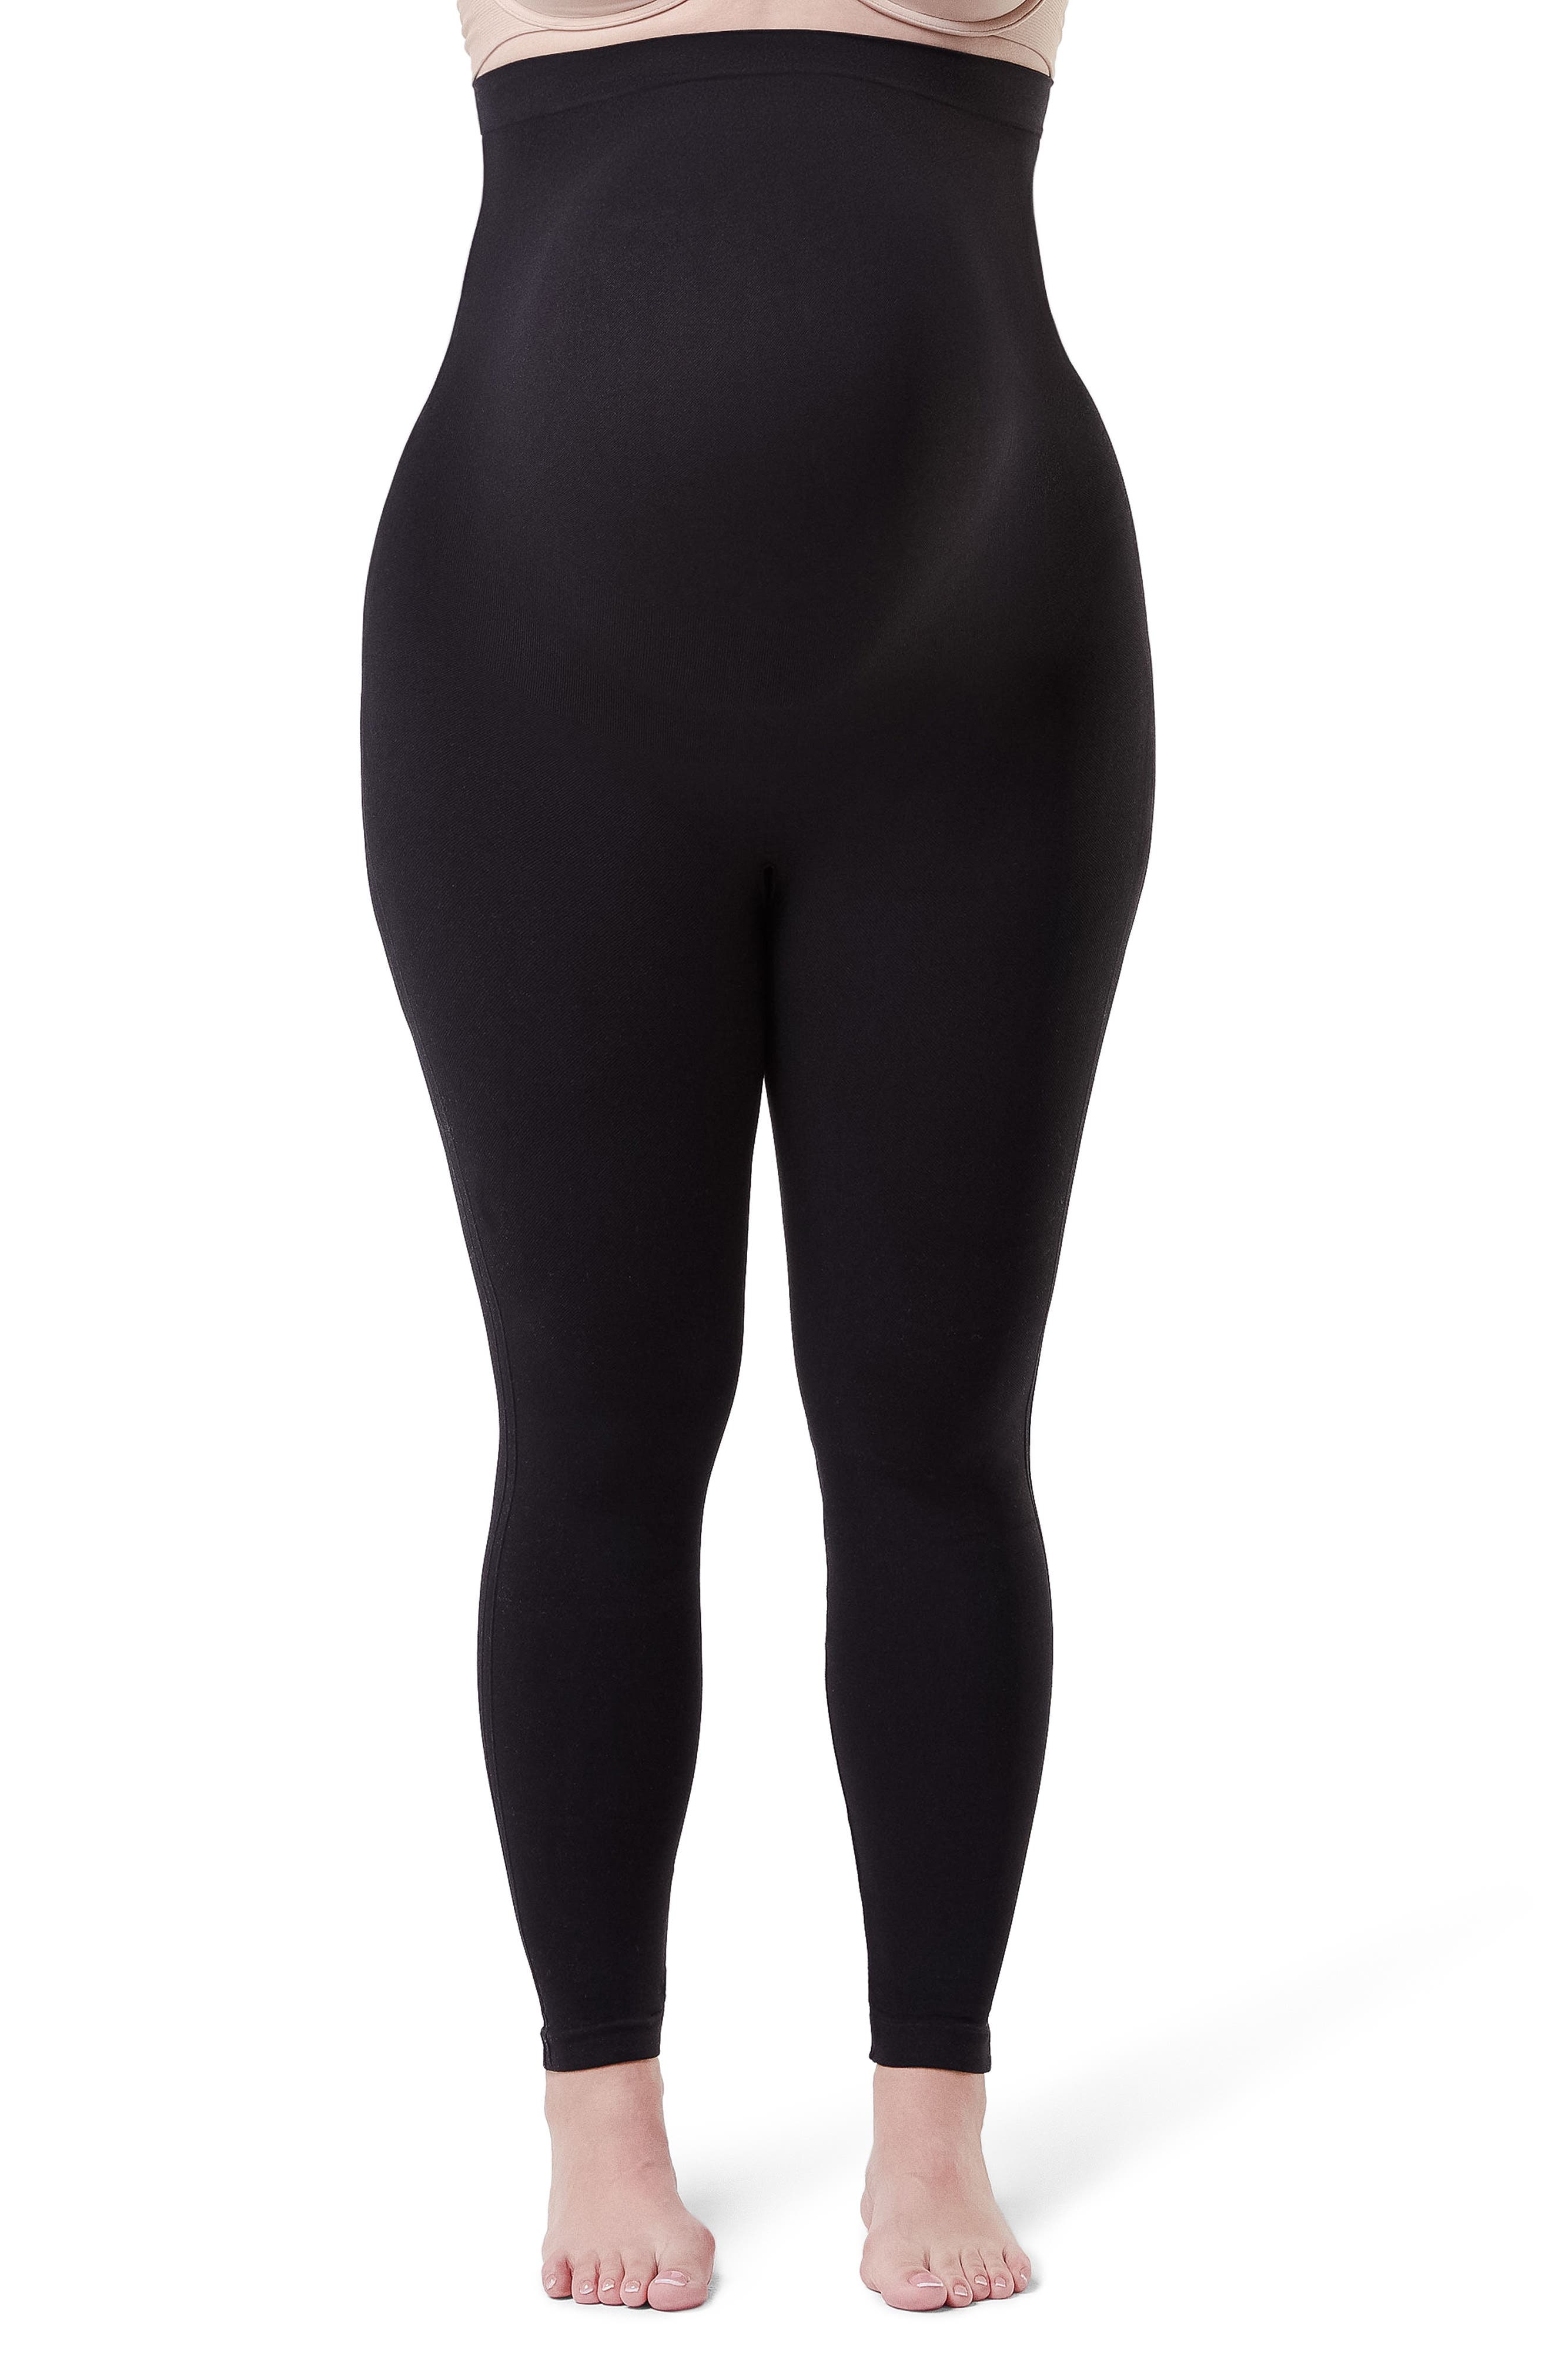 Mama Look at Me Now Seamless Maternity Leggings,                         Main,                         color, VERY BLACK